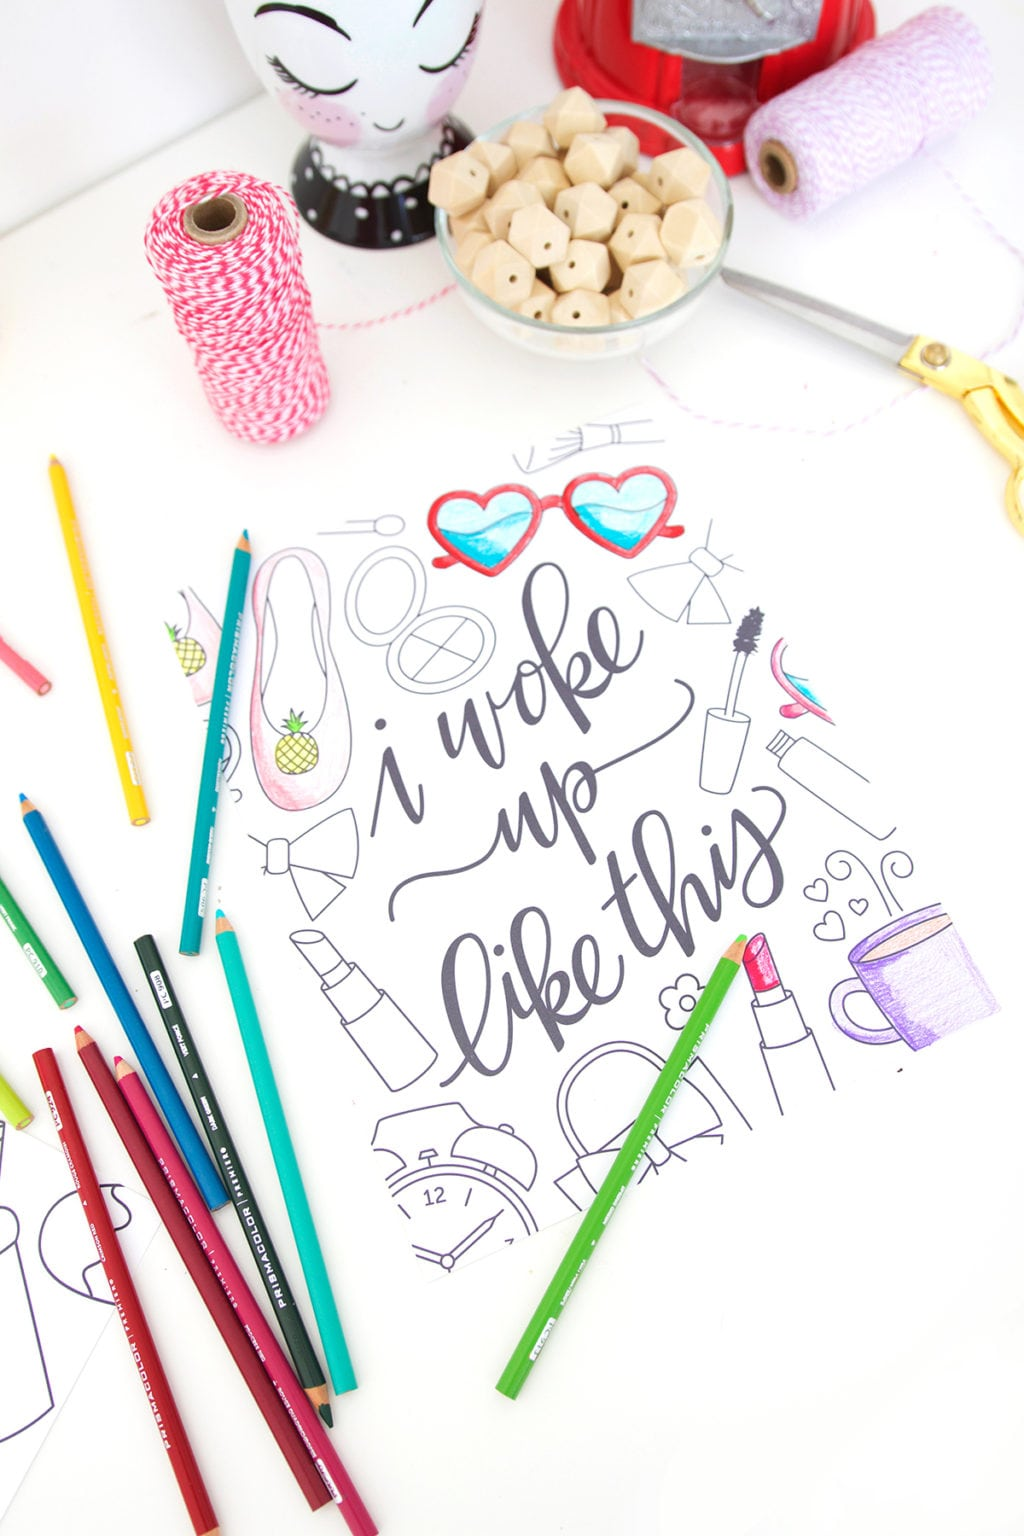 Give a little love to your favorite song lyrics and do some crafting at the same time with these Coloring Song Lyric Posters perfect for the office, kitchen or craft room.